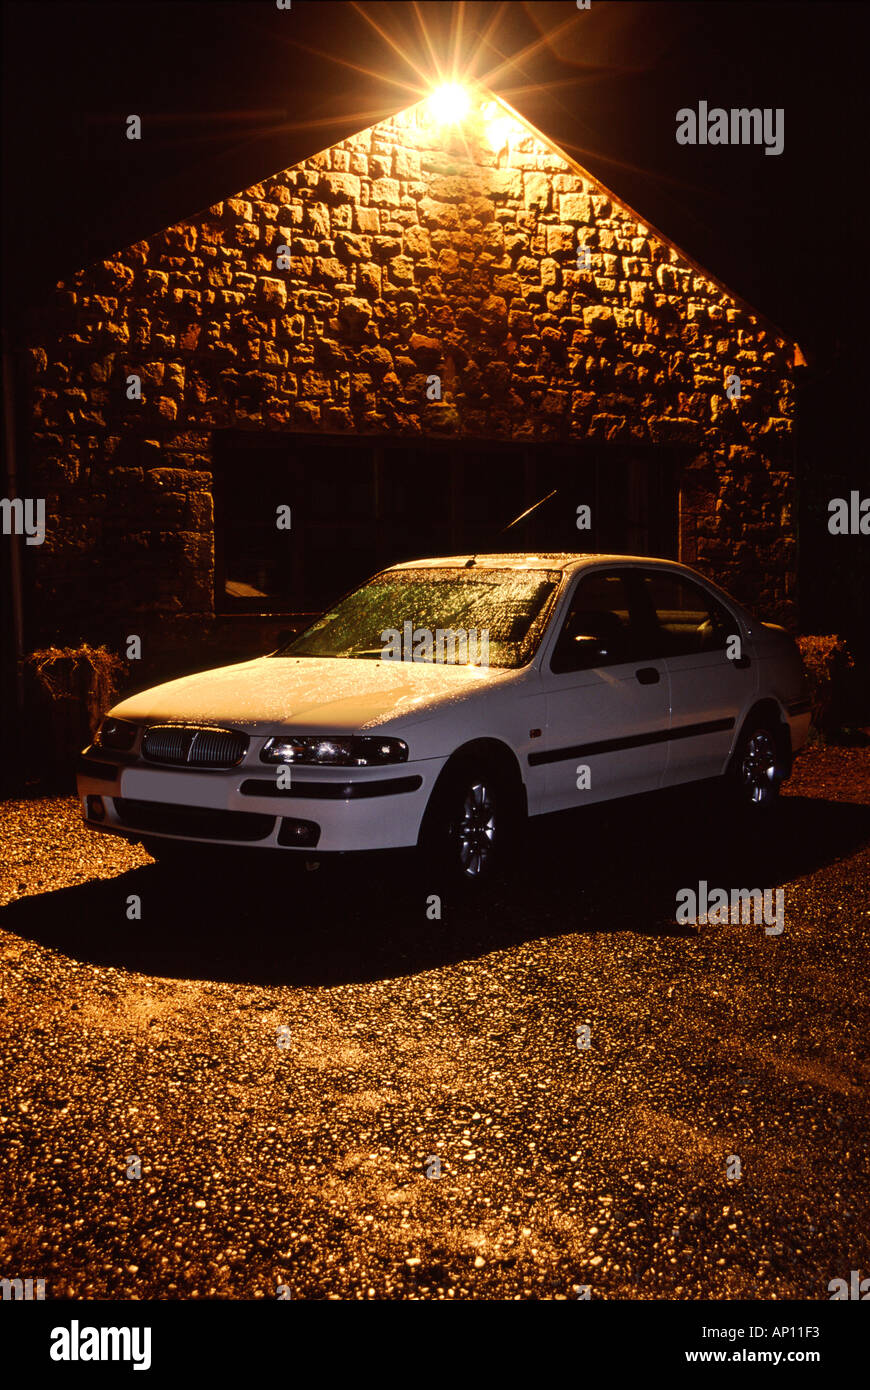 Car On A Driveway At Night Lit By A Security Light Stock Photo